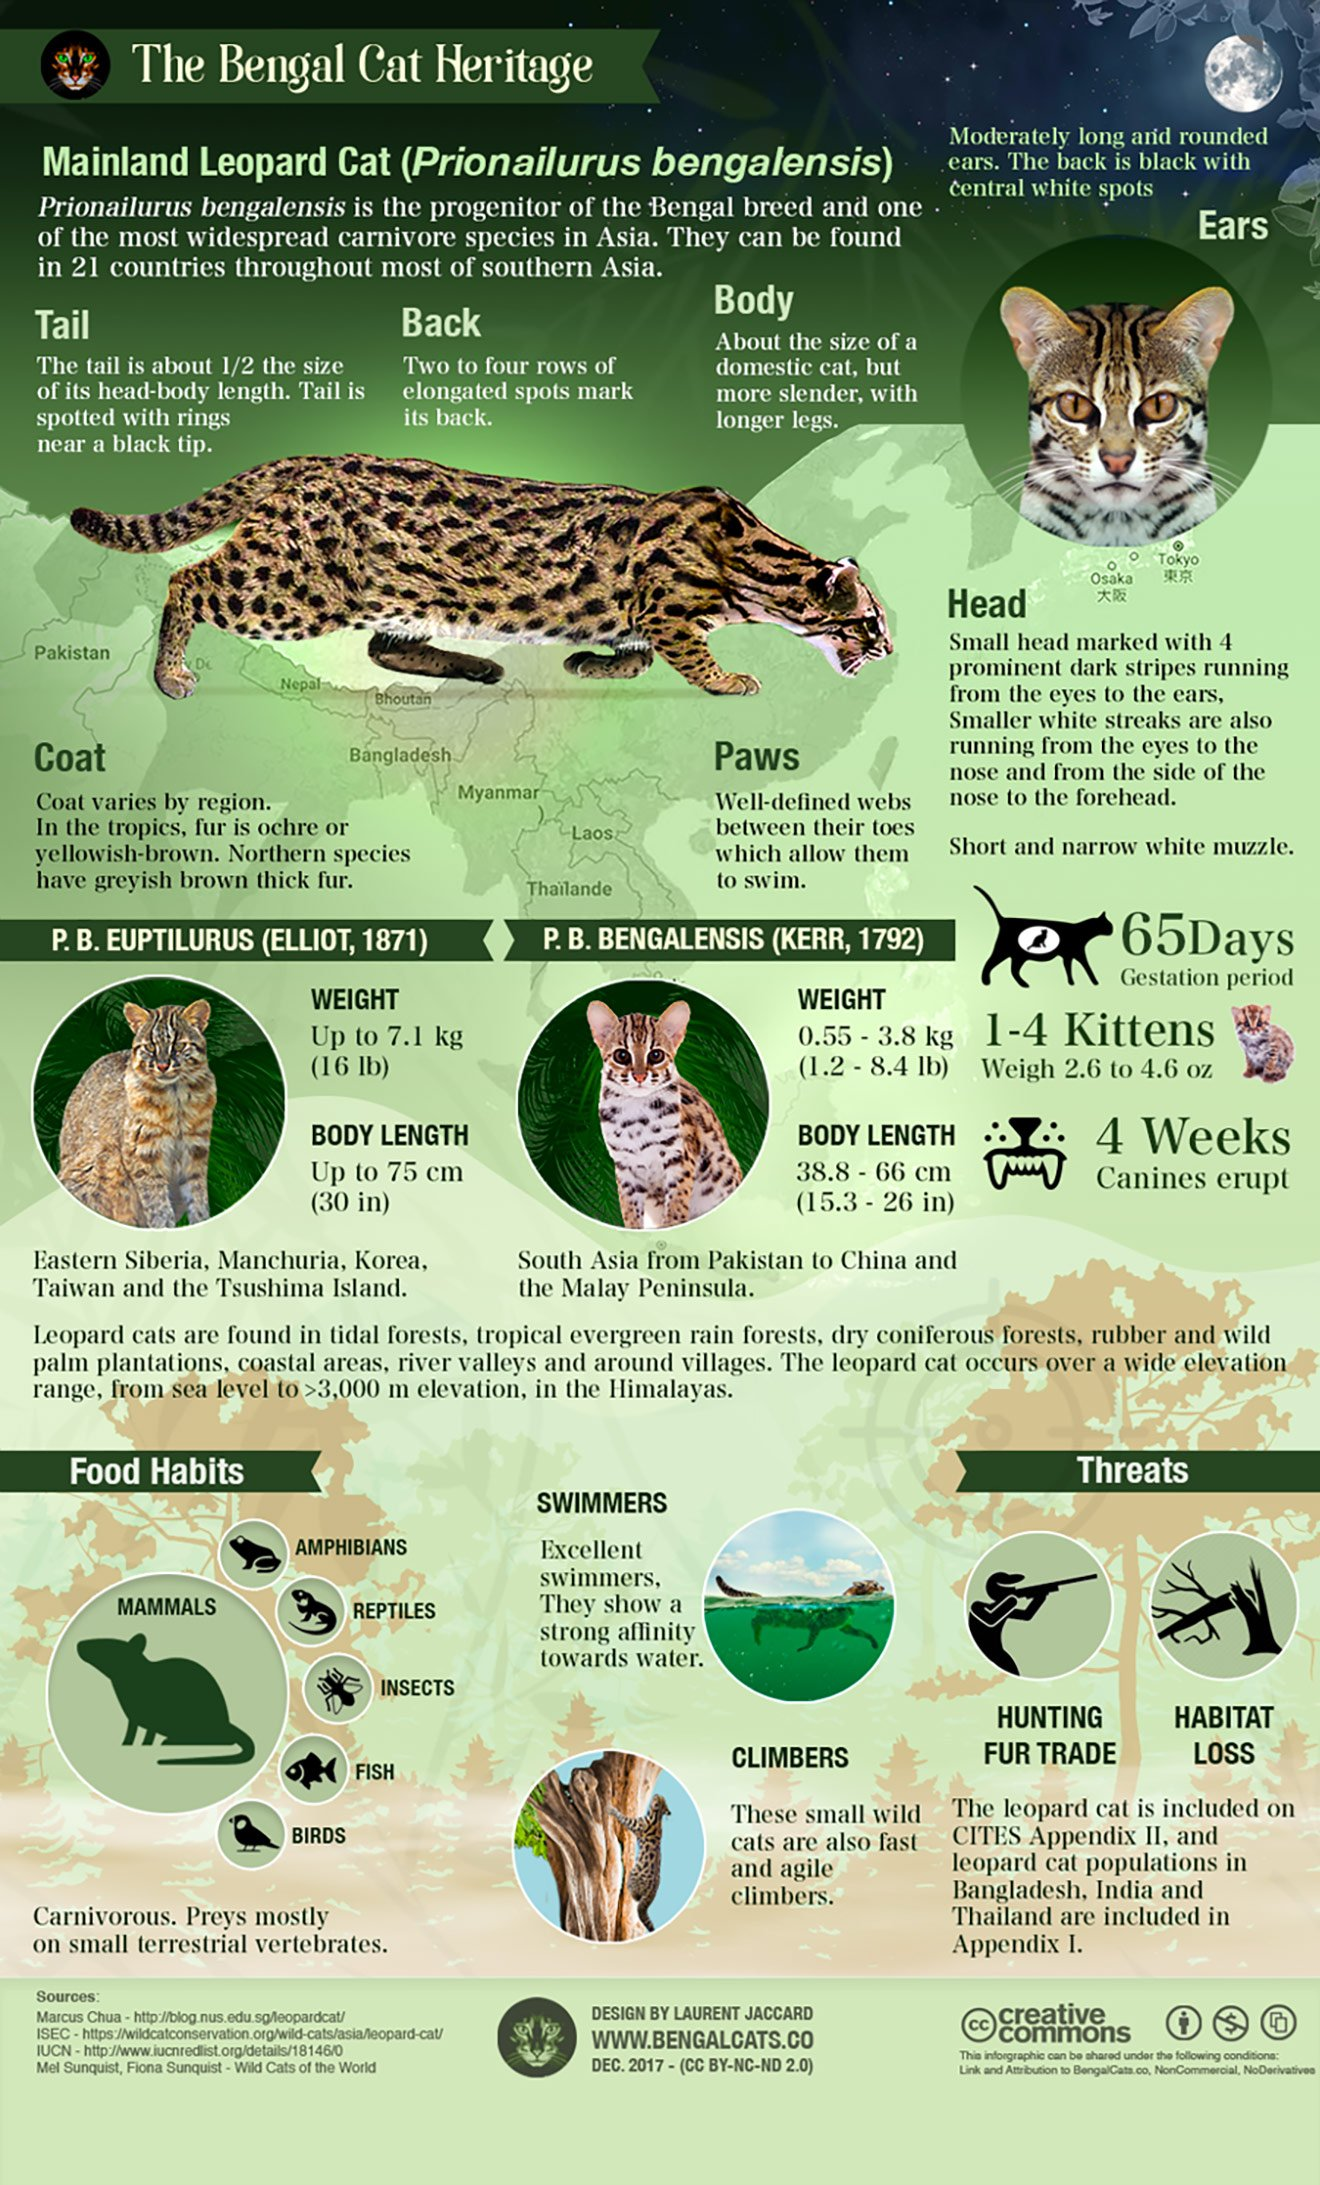 Infographic about the Leopard cat (Prionailurus bengalensis)